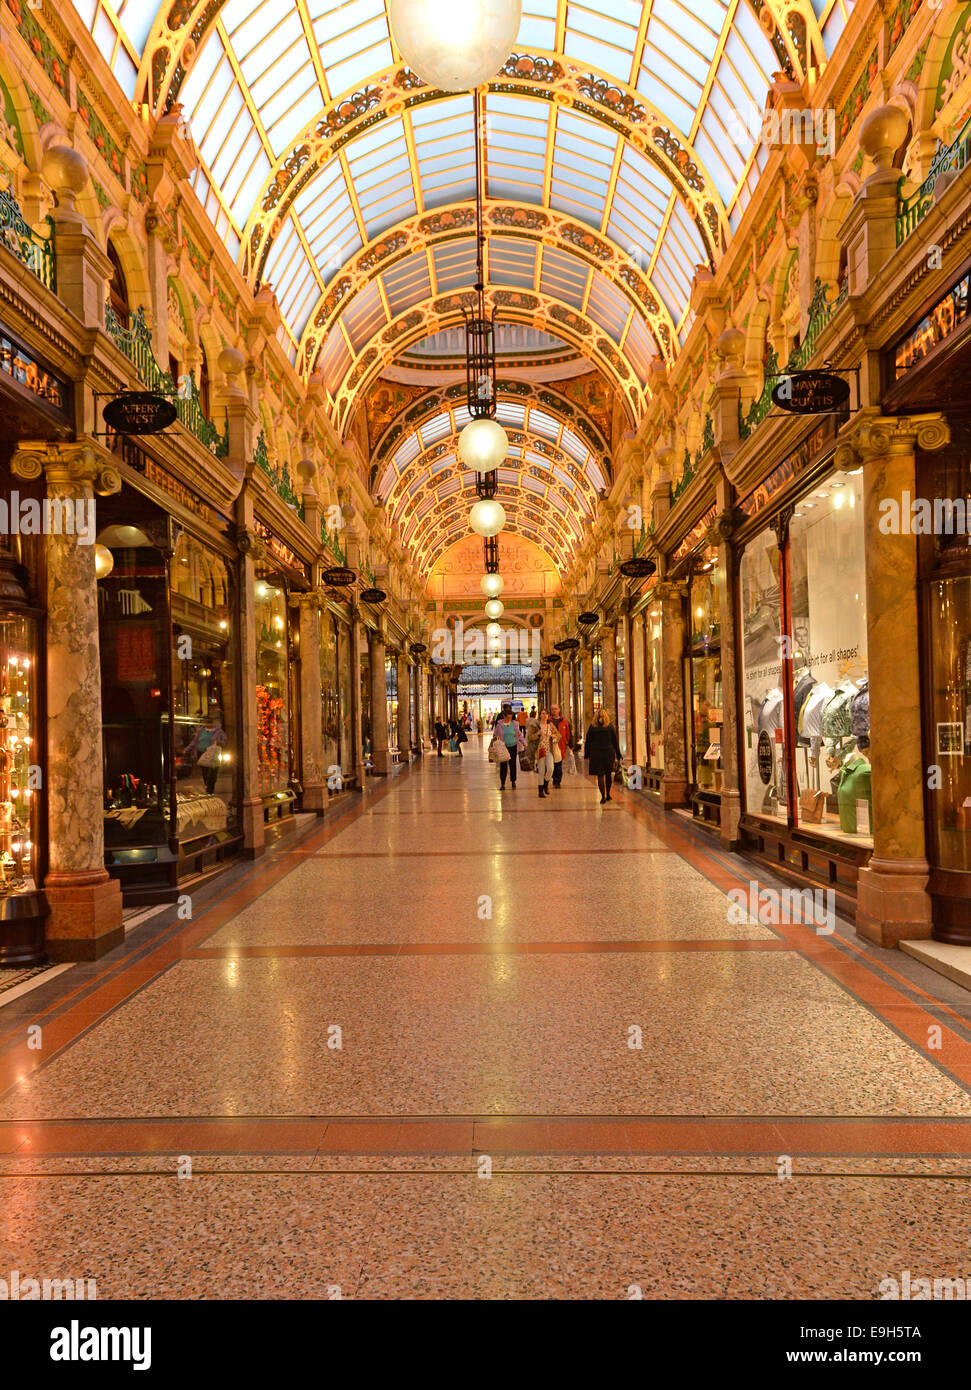 County Arcade, Victoria Quarter, Leeds, West Yorkshire, England, United Kingdom - Stock Image